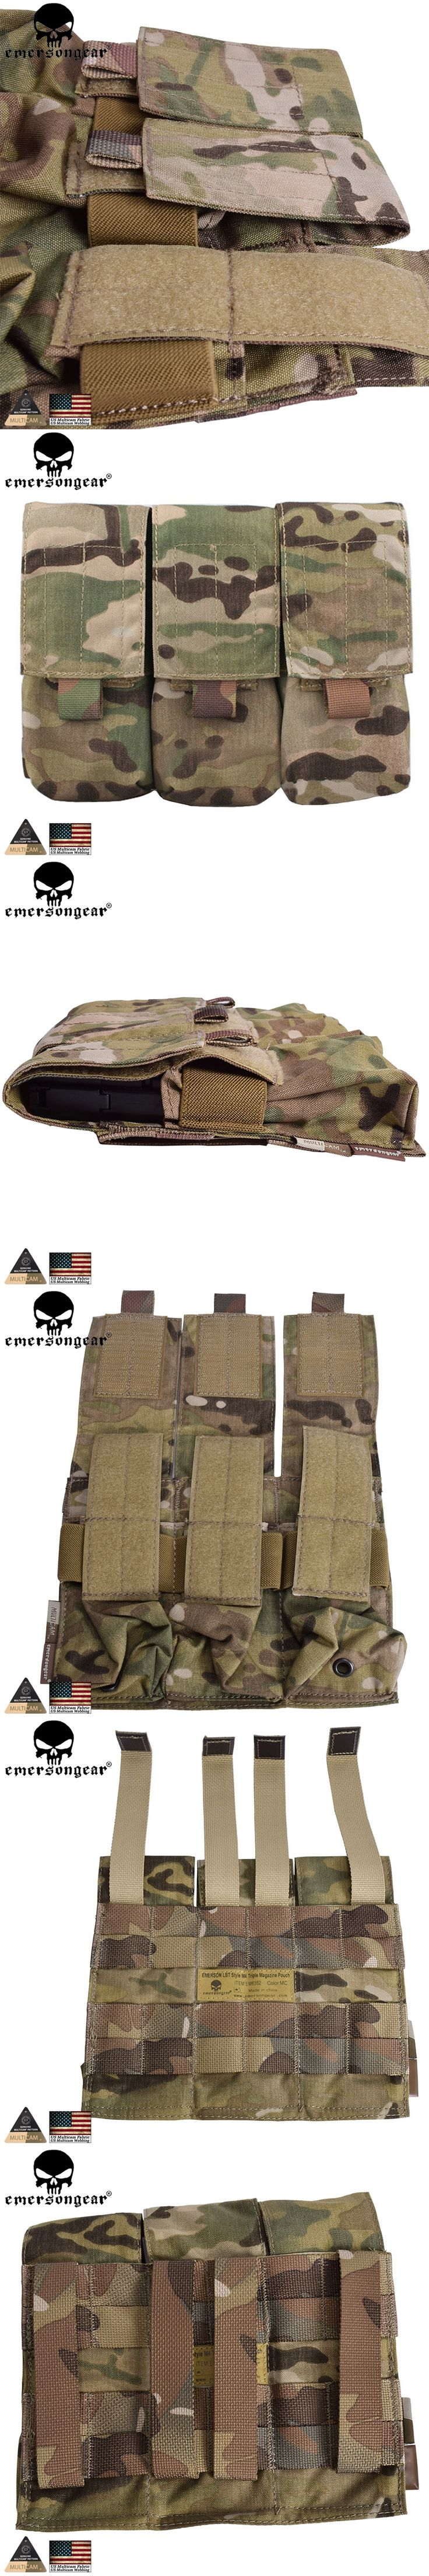 EMERSONGEAR LBT Style M4 Triple Pistol Mag Pouch Molle Military Airsoft Paintball Combat Gear Gun Magazine  Pouch EM6352